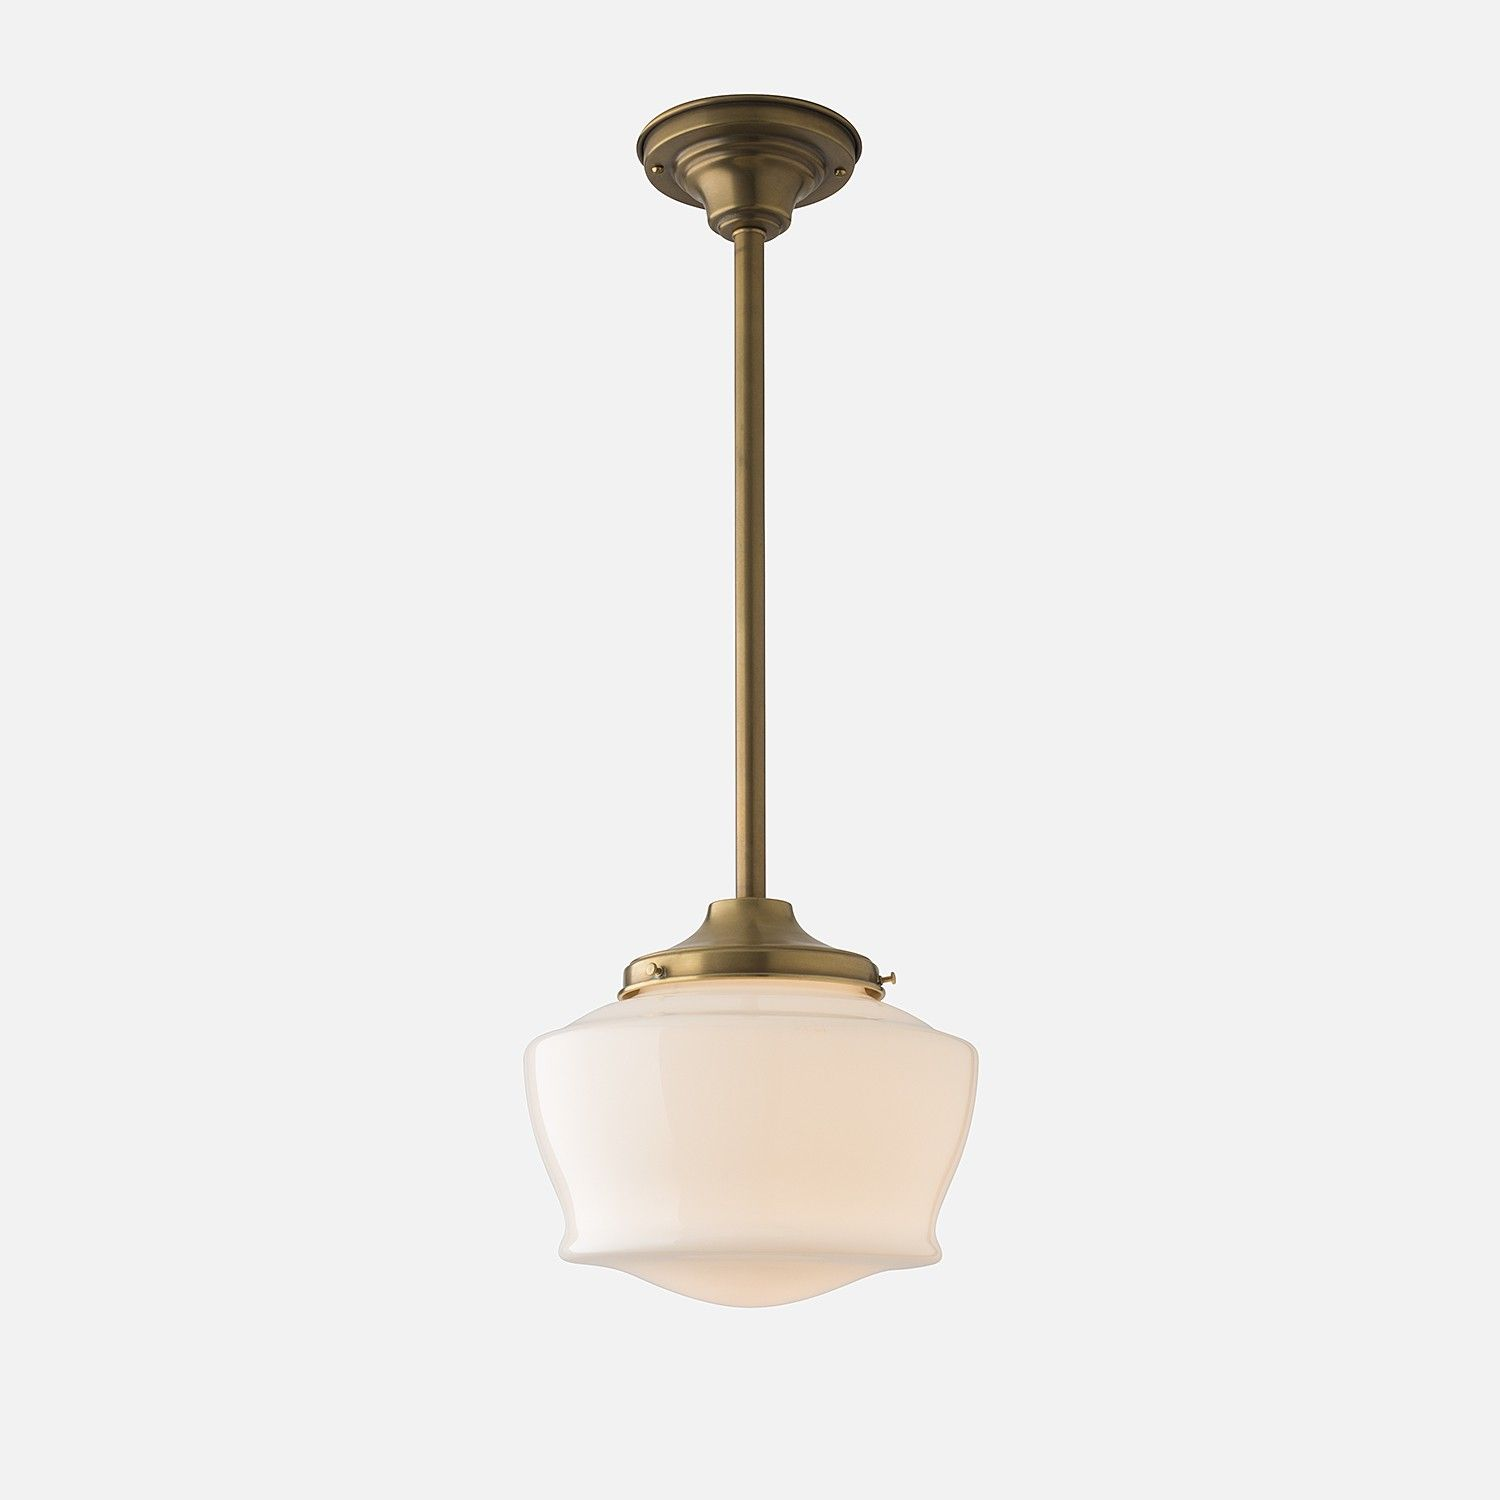 Union 6 Pendant Light Fixture - Schoolhouse Electric & Supply